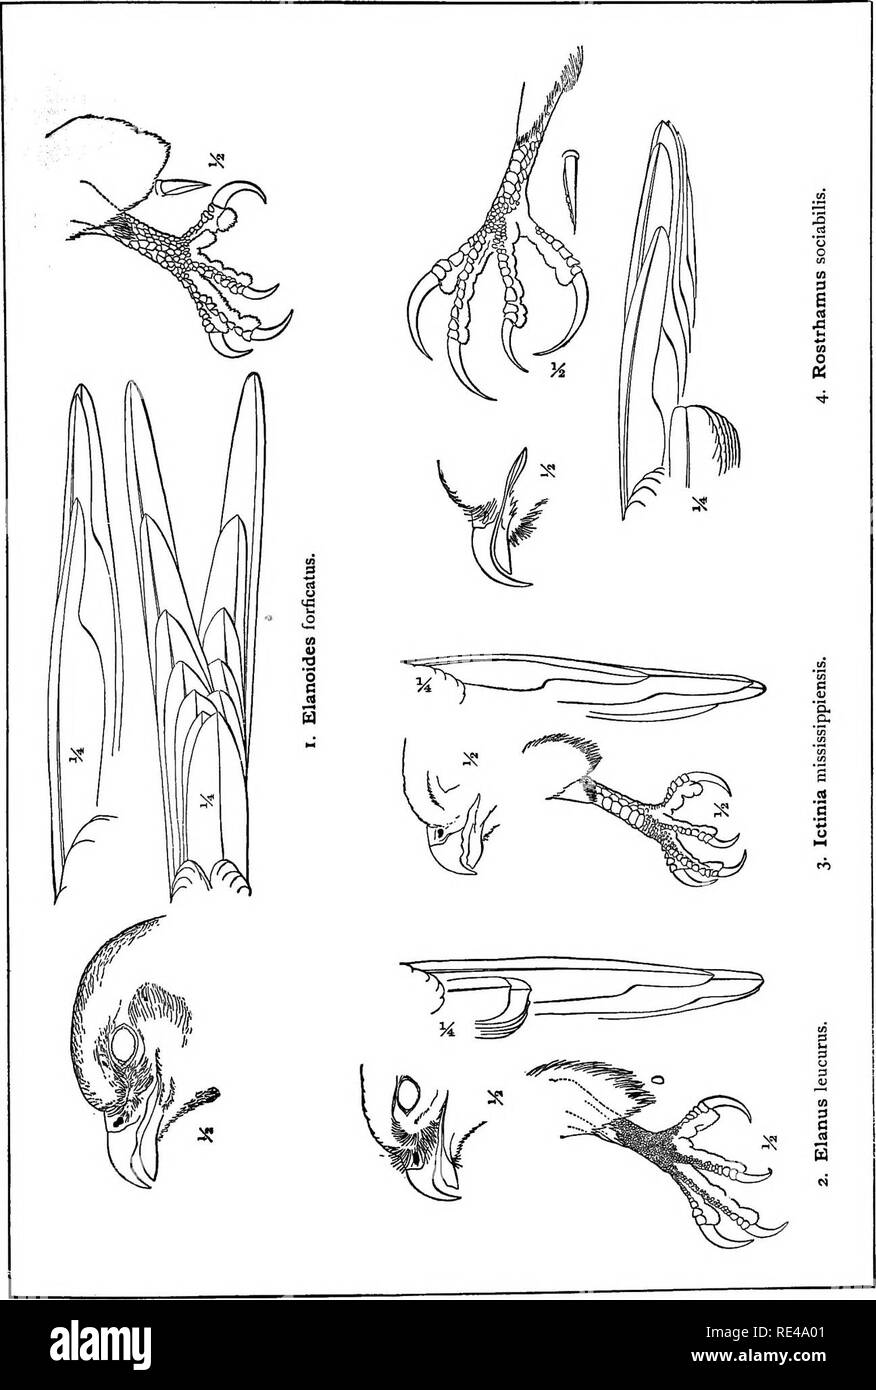 . A manual of North American birds. Birds. Plate LXV.. Please note that these images are extracted from scanned page images that may have been digitally enhanced for readability - coloration and appearance of these illustrations may not perfectly resemble the original work.. Ridgway, Robert, 1850-1929. Philadelphia, J. B. Lippincott Company - Stock Image